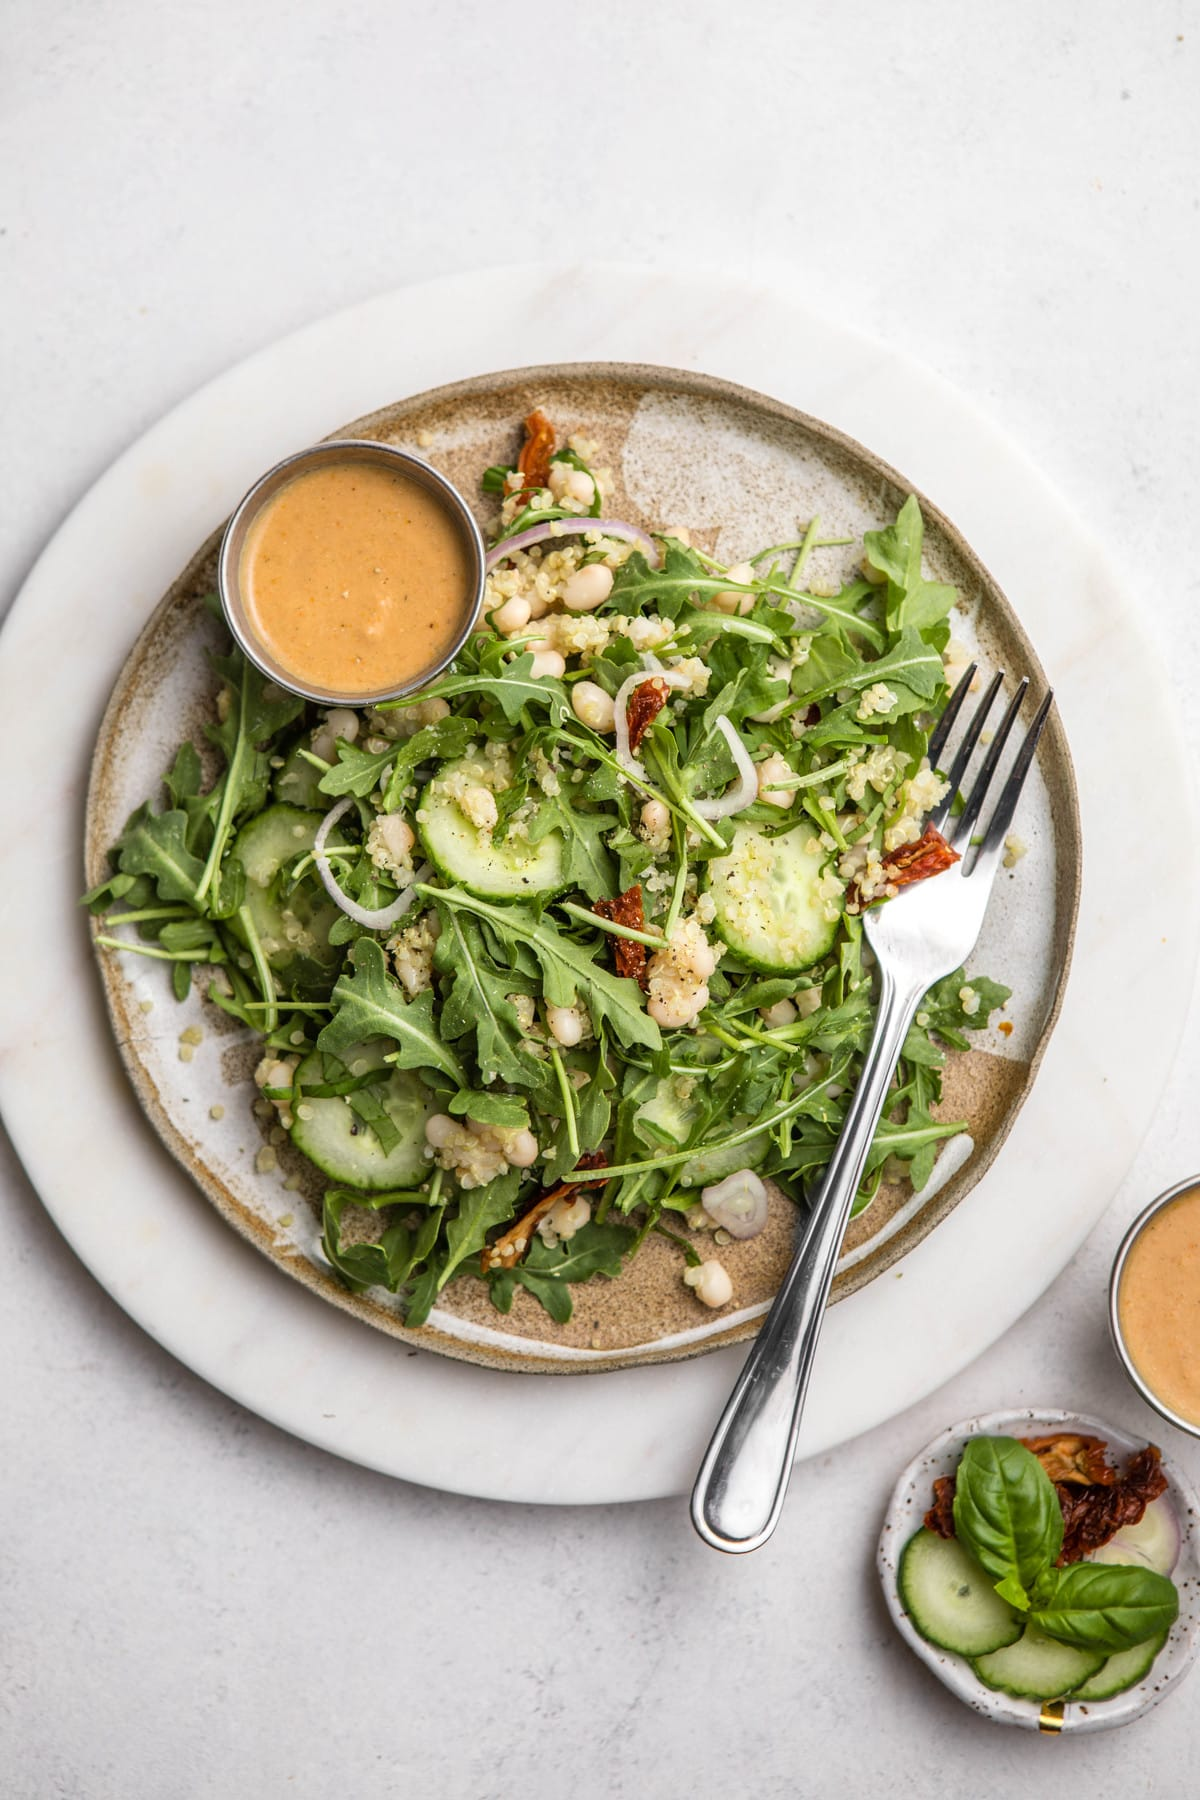 quinoa and arugula salad on tan ceramic plate with dressing on the side on white background